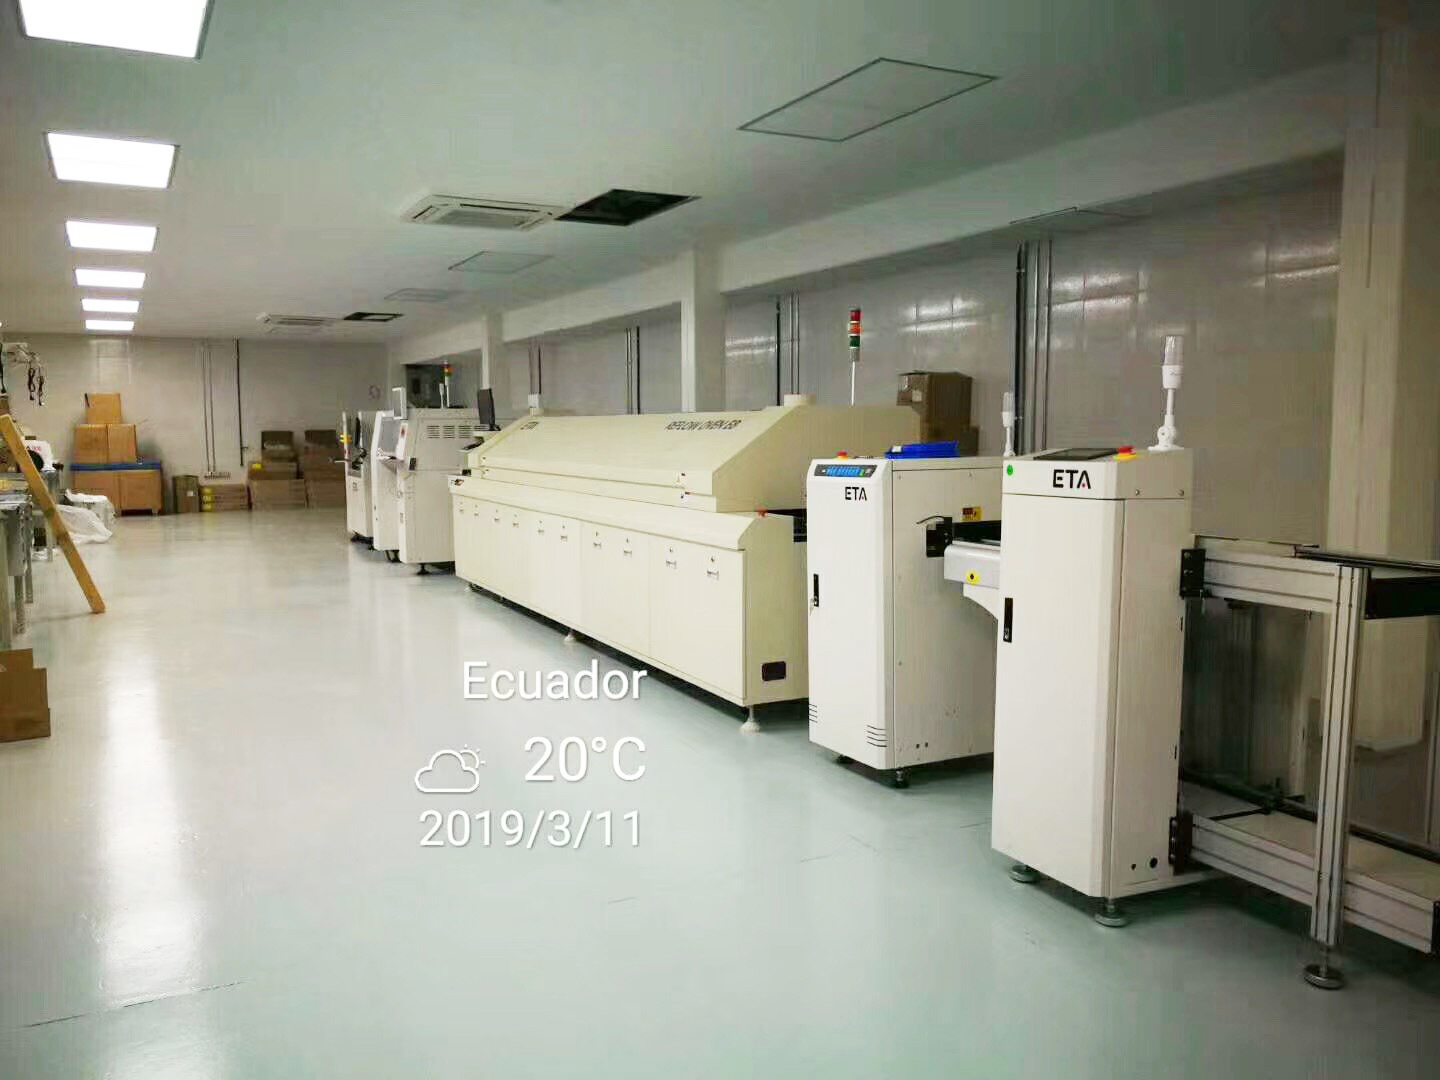 Chin Supplier ETA Customized Reflow Oven 10 Zones for Washing Machine Motor 7